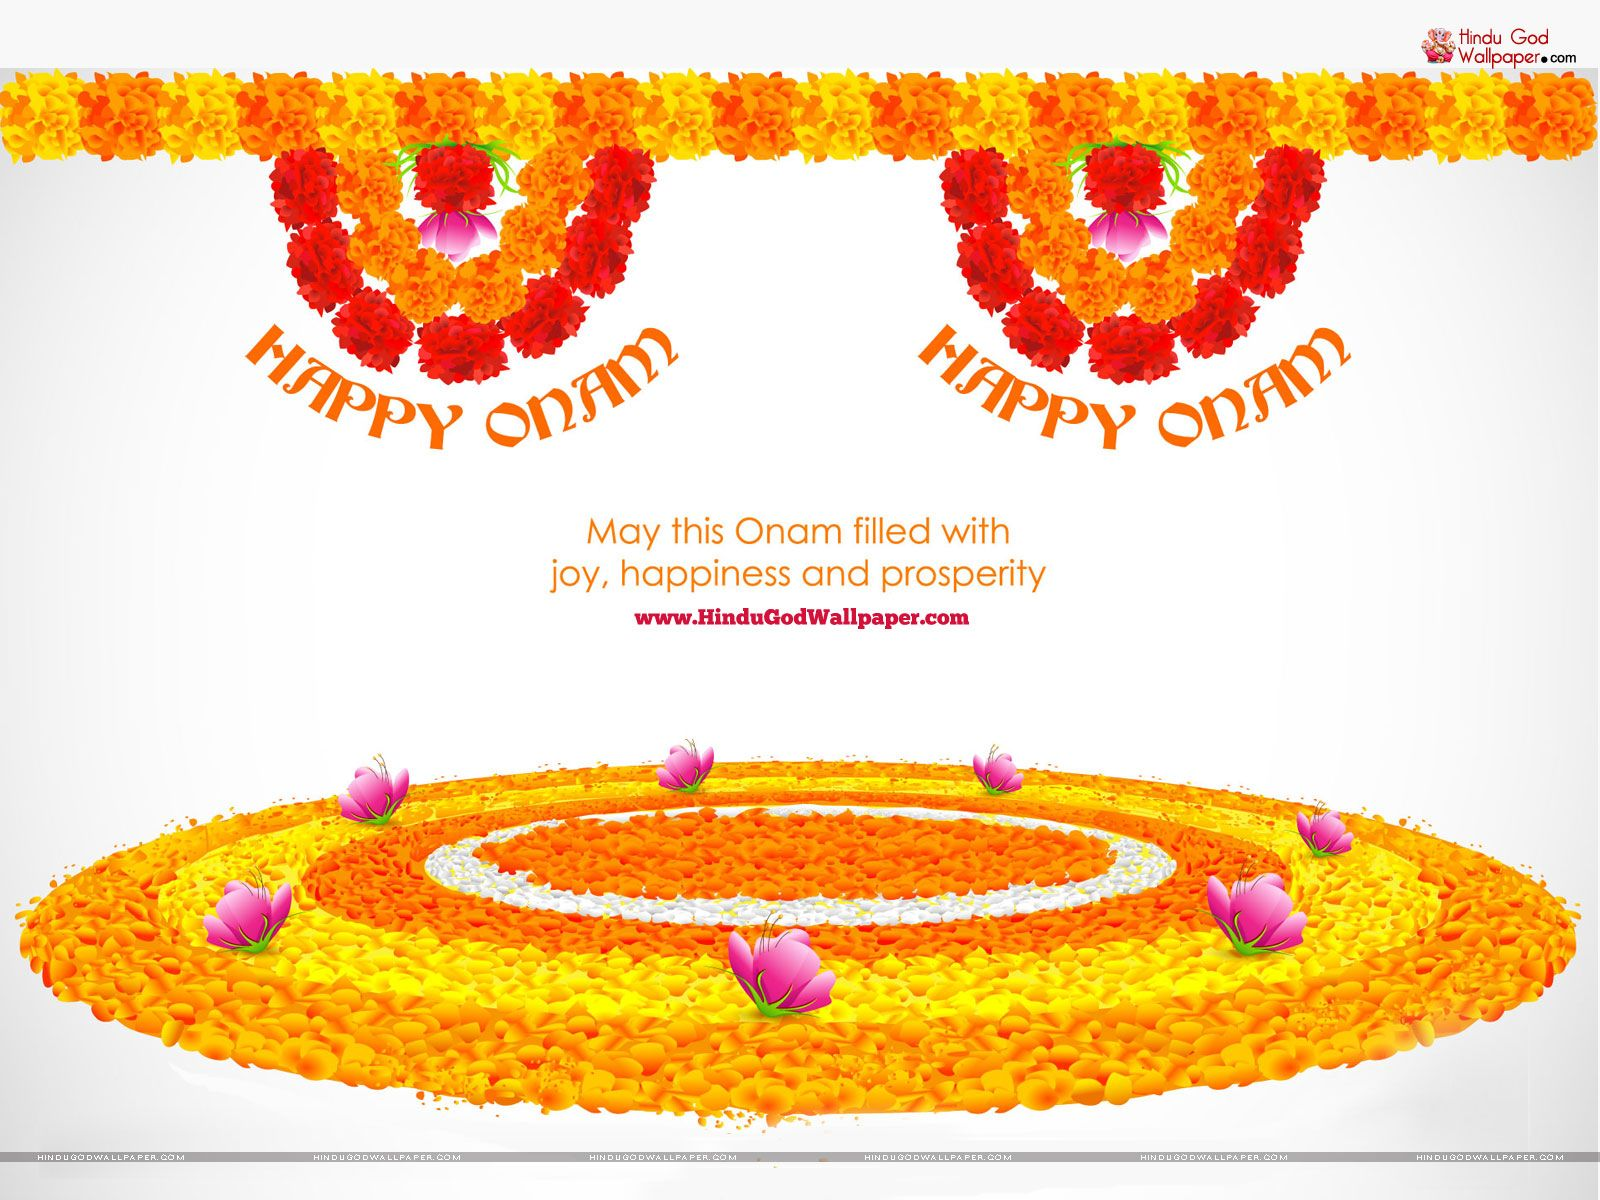 Onam pookalam wallpapers pictures hd free download onam onam pookalam wallpapers pictures hd free download kristyandbryce Image collections